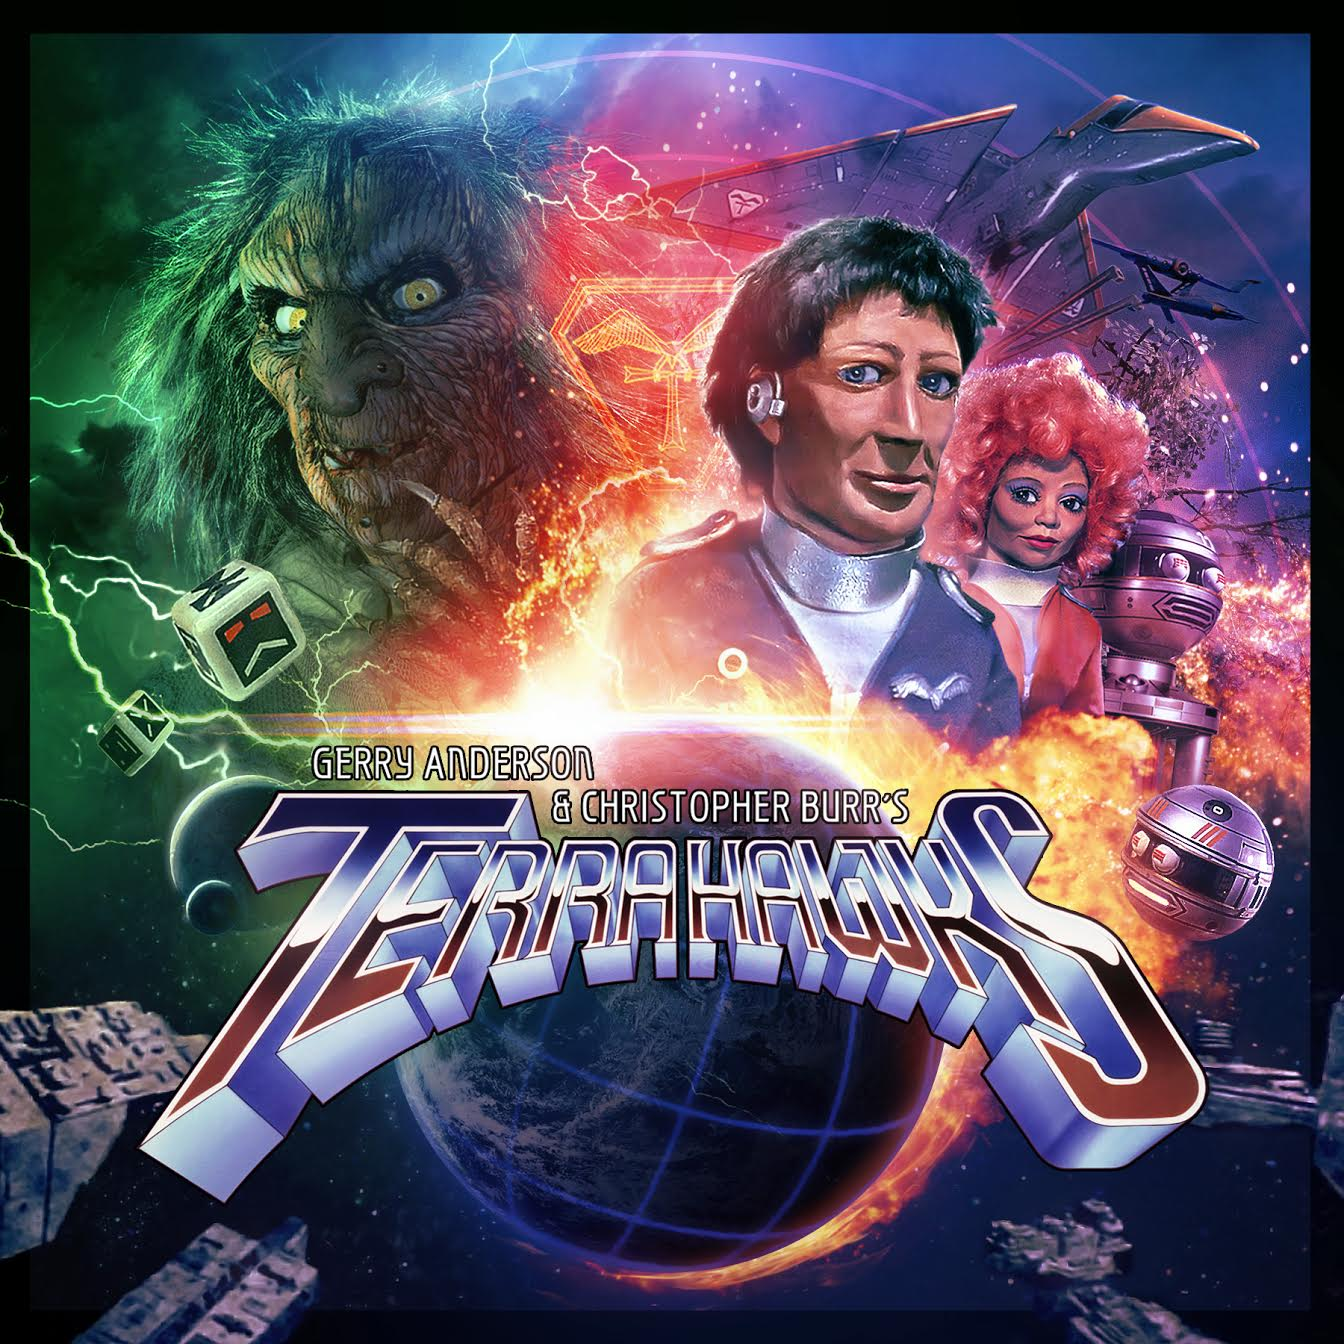 Anderson Entertainment and Big Finish begin producing a series of new full-cast audio dramas of Terrahawks.